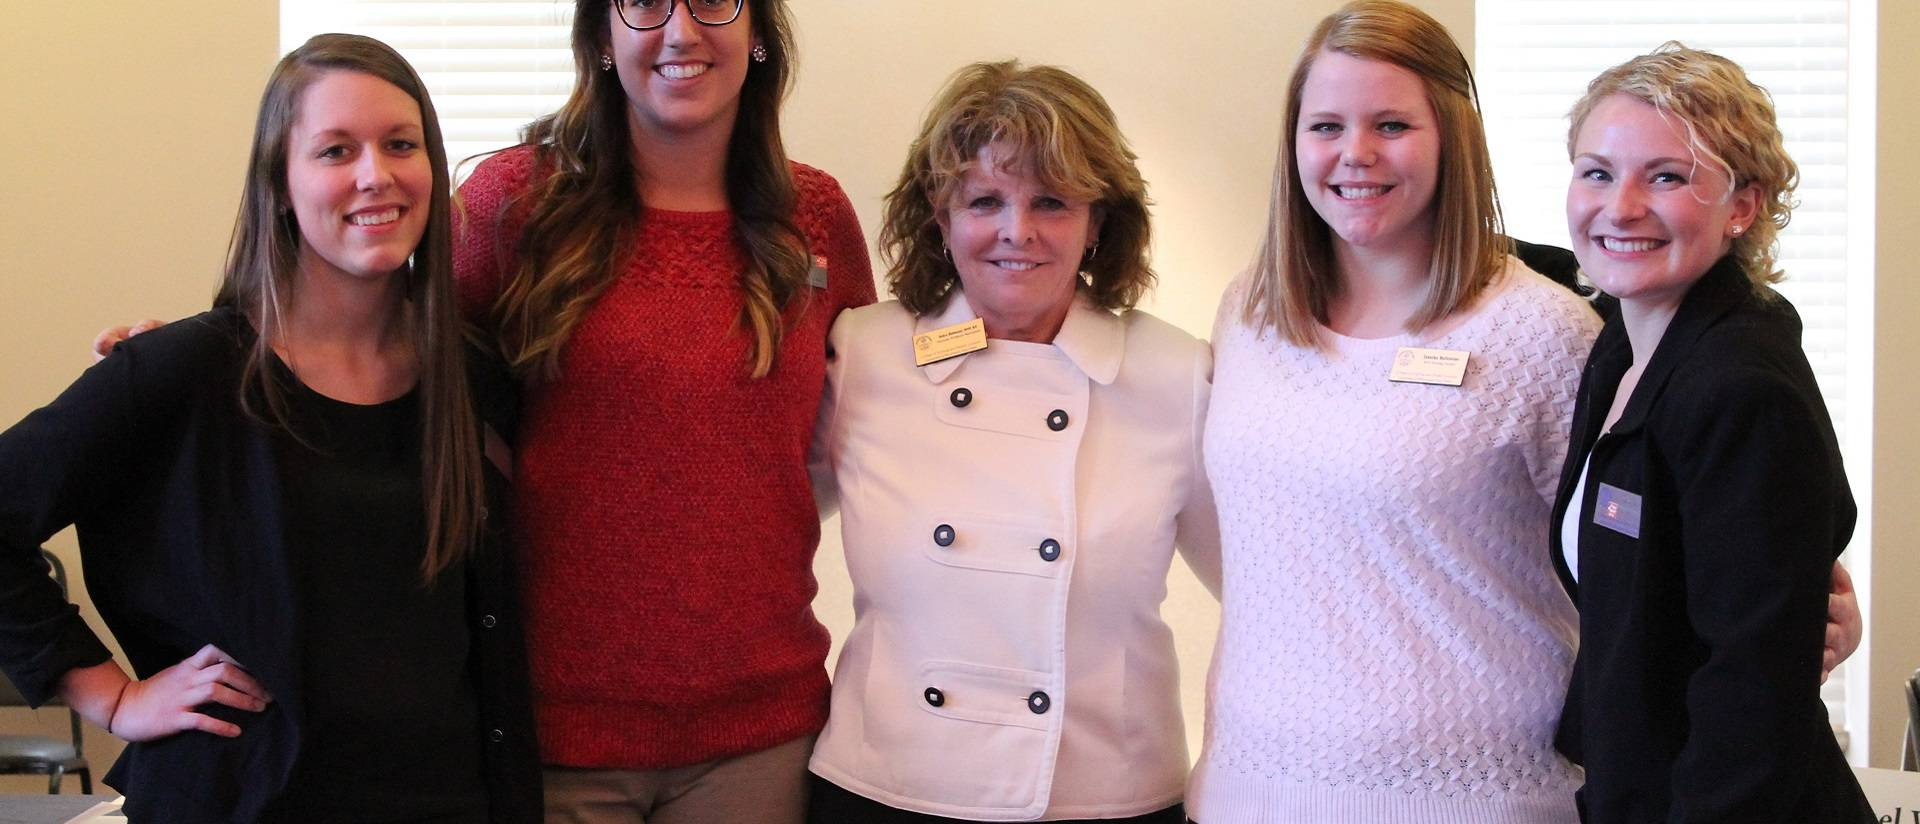 Students organize rural health policy event